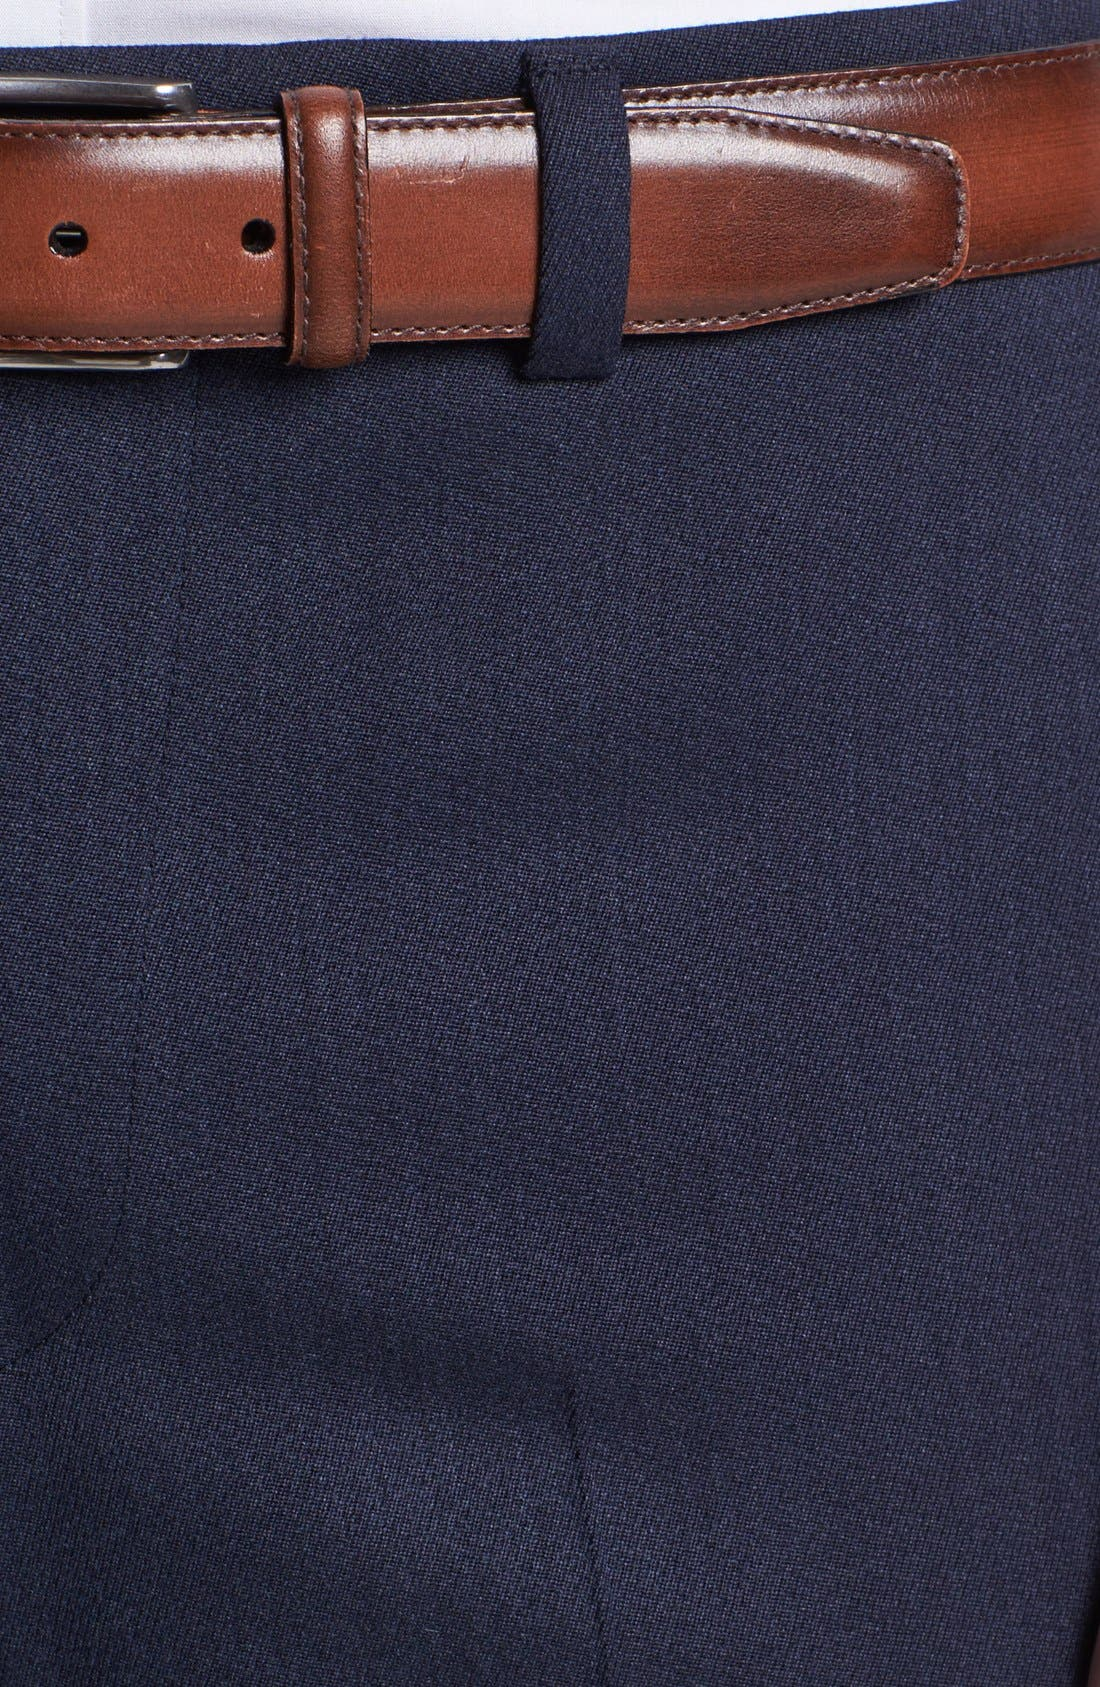 Alternate Image 3  - Ted Baker London Flat Front Tricotine Trousers